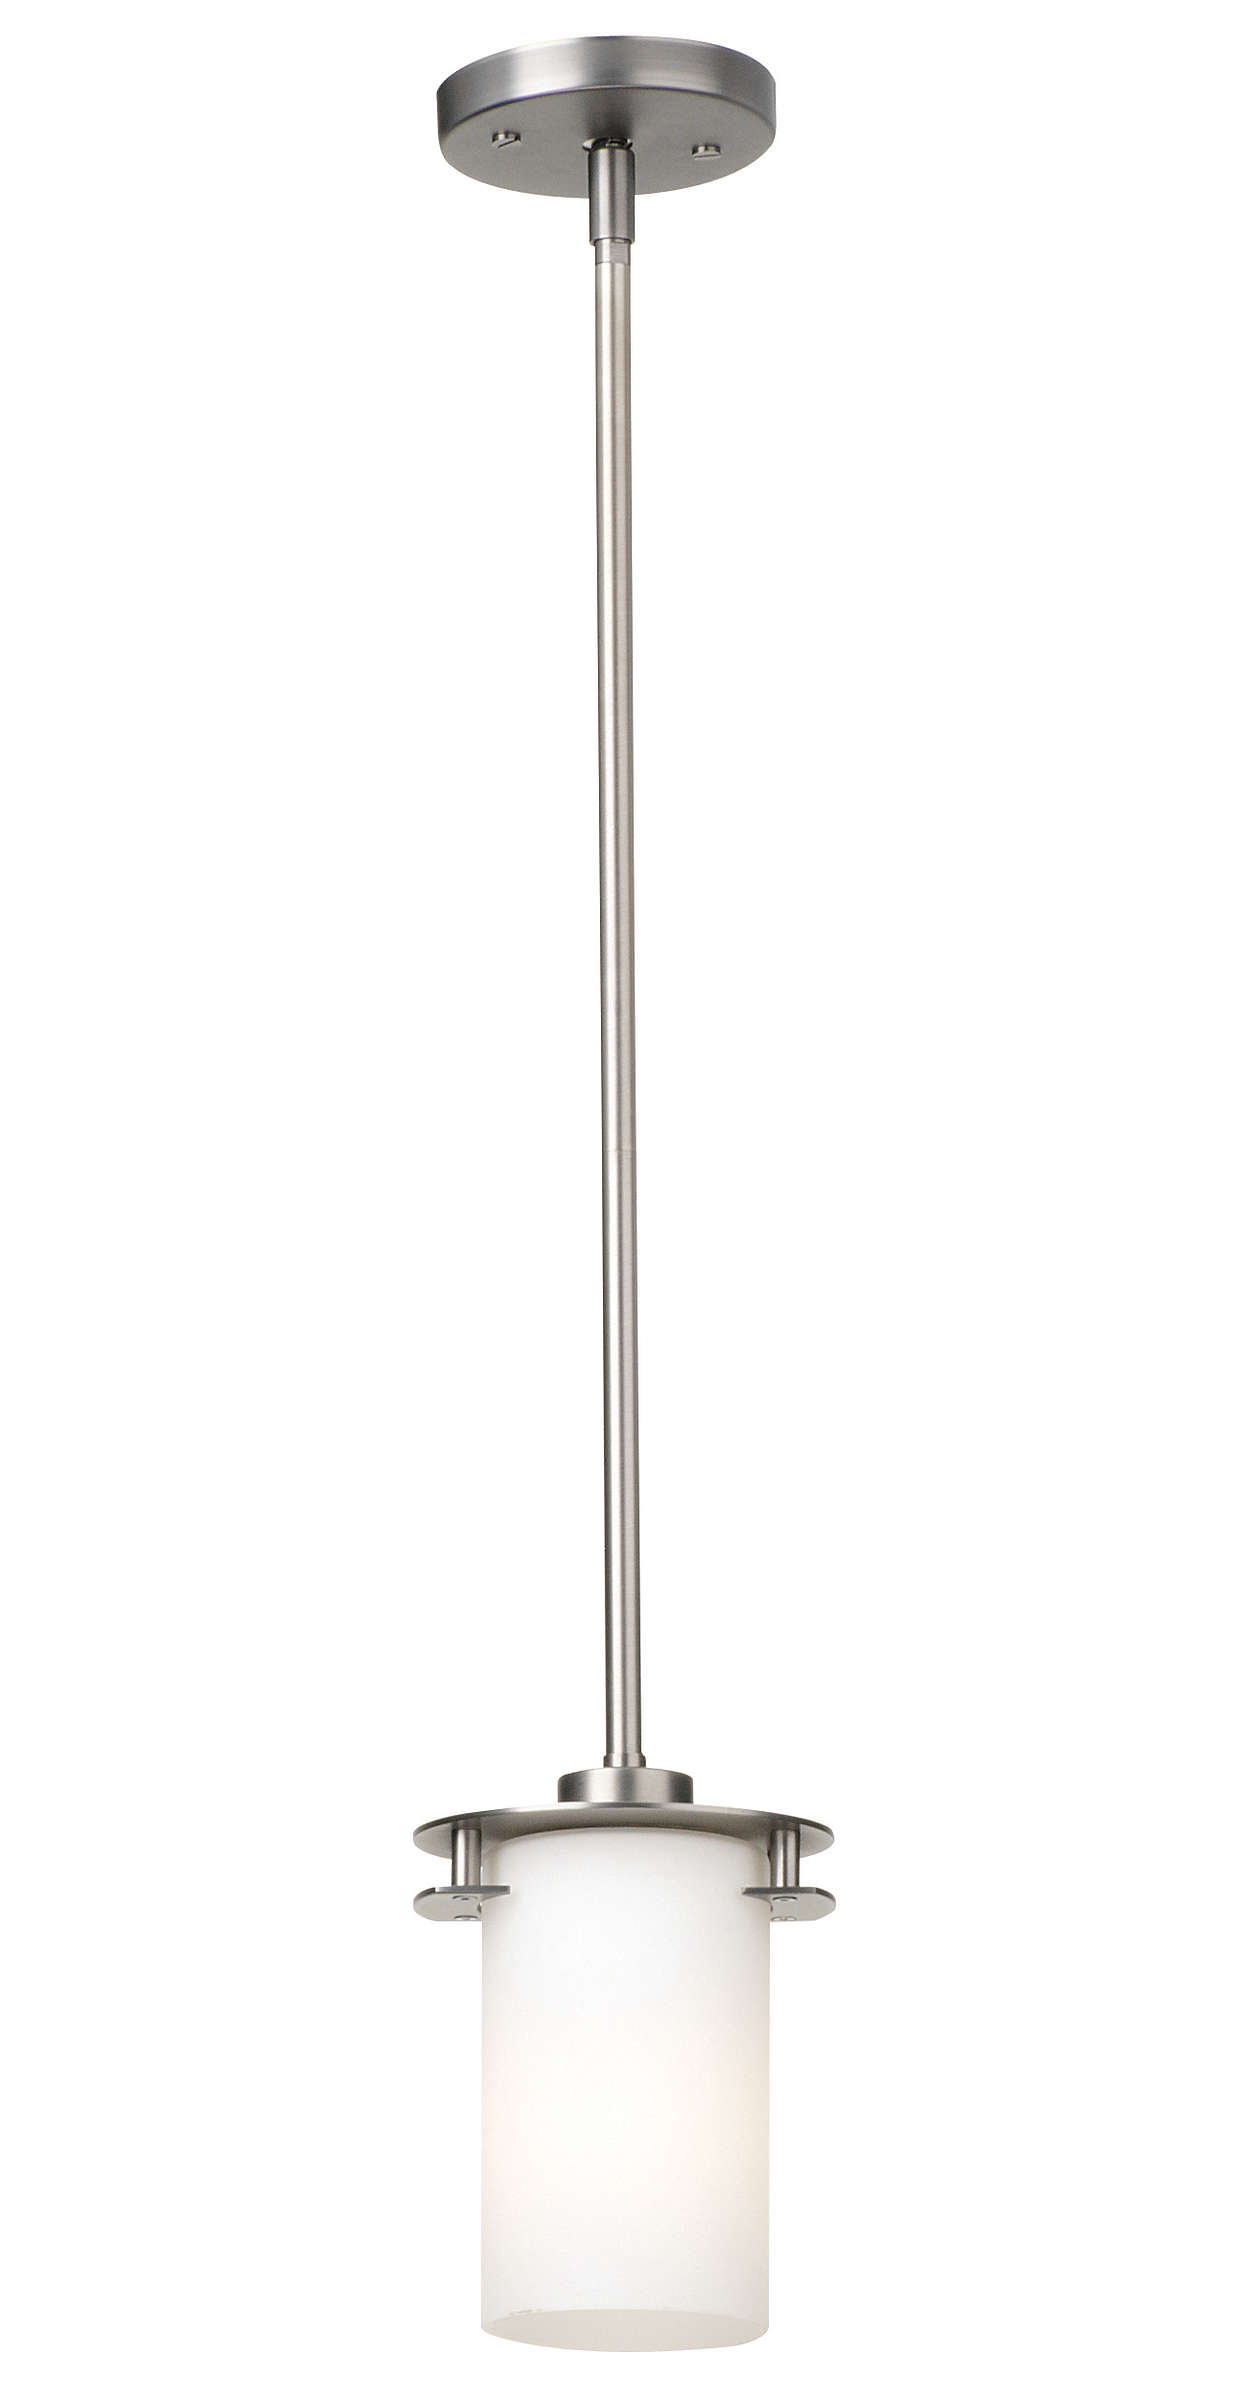 Ingo 1-light Pendant in Gun Metal finish